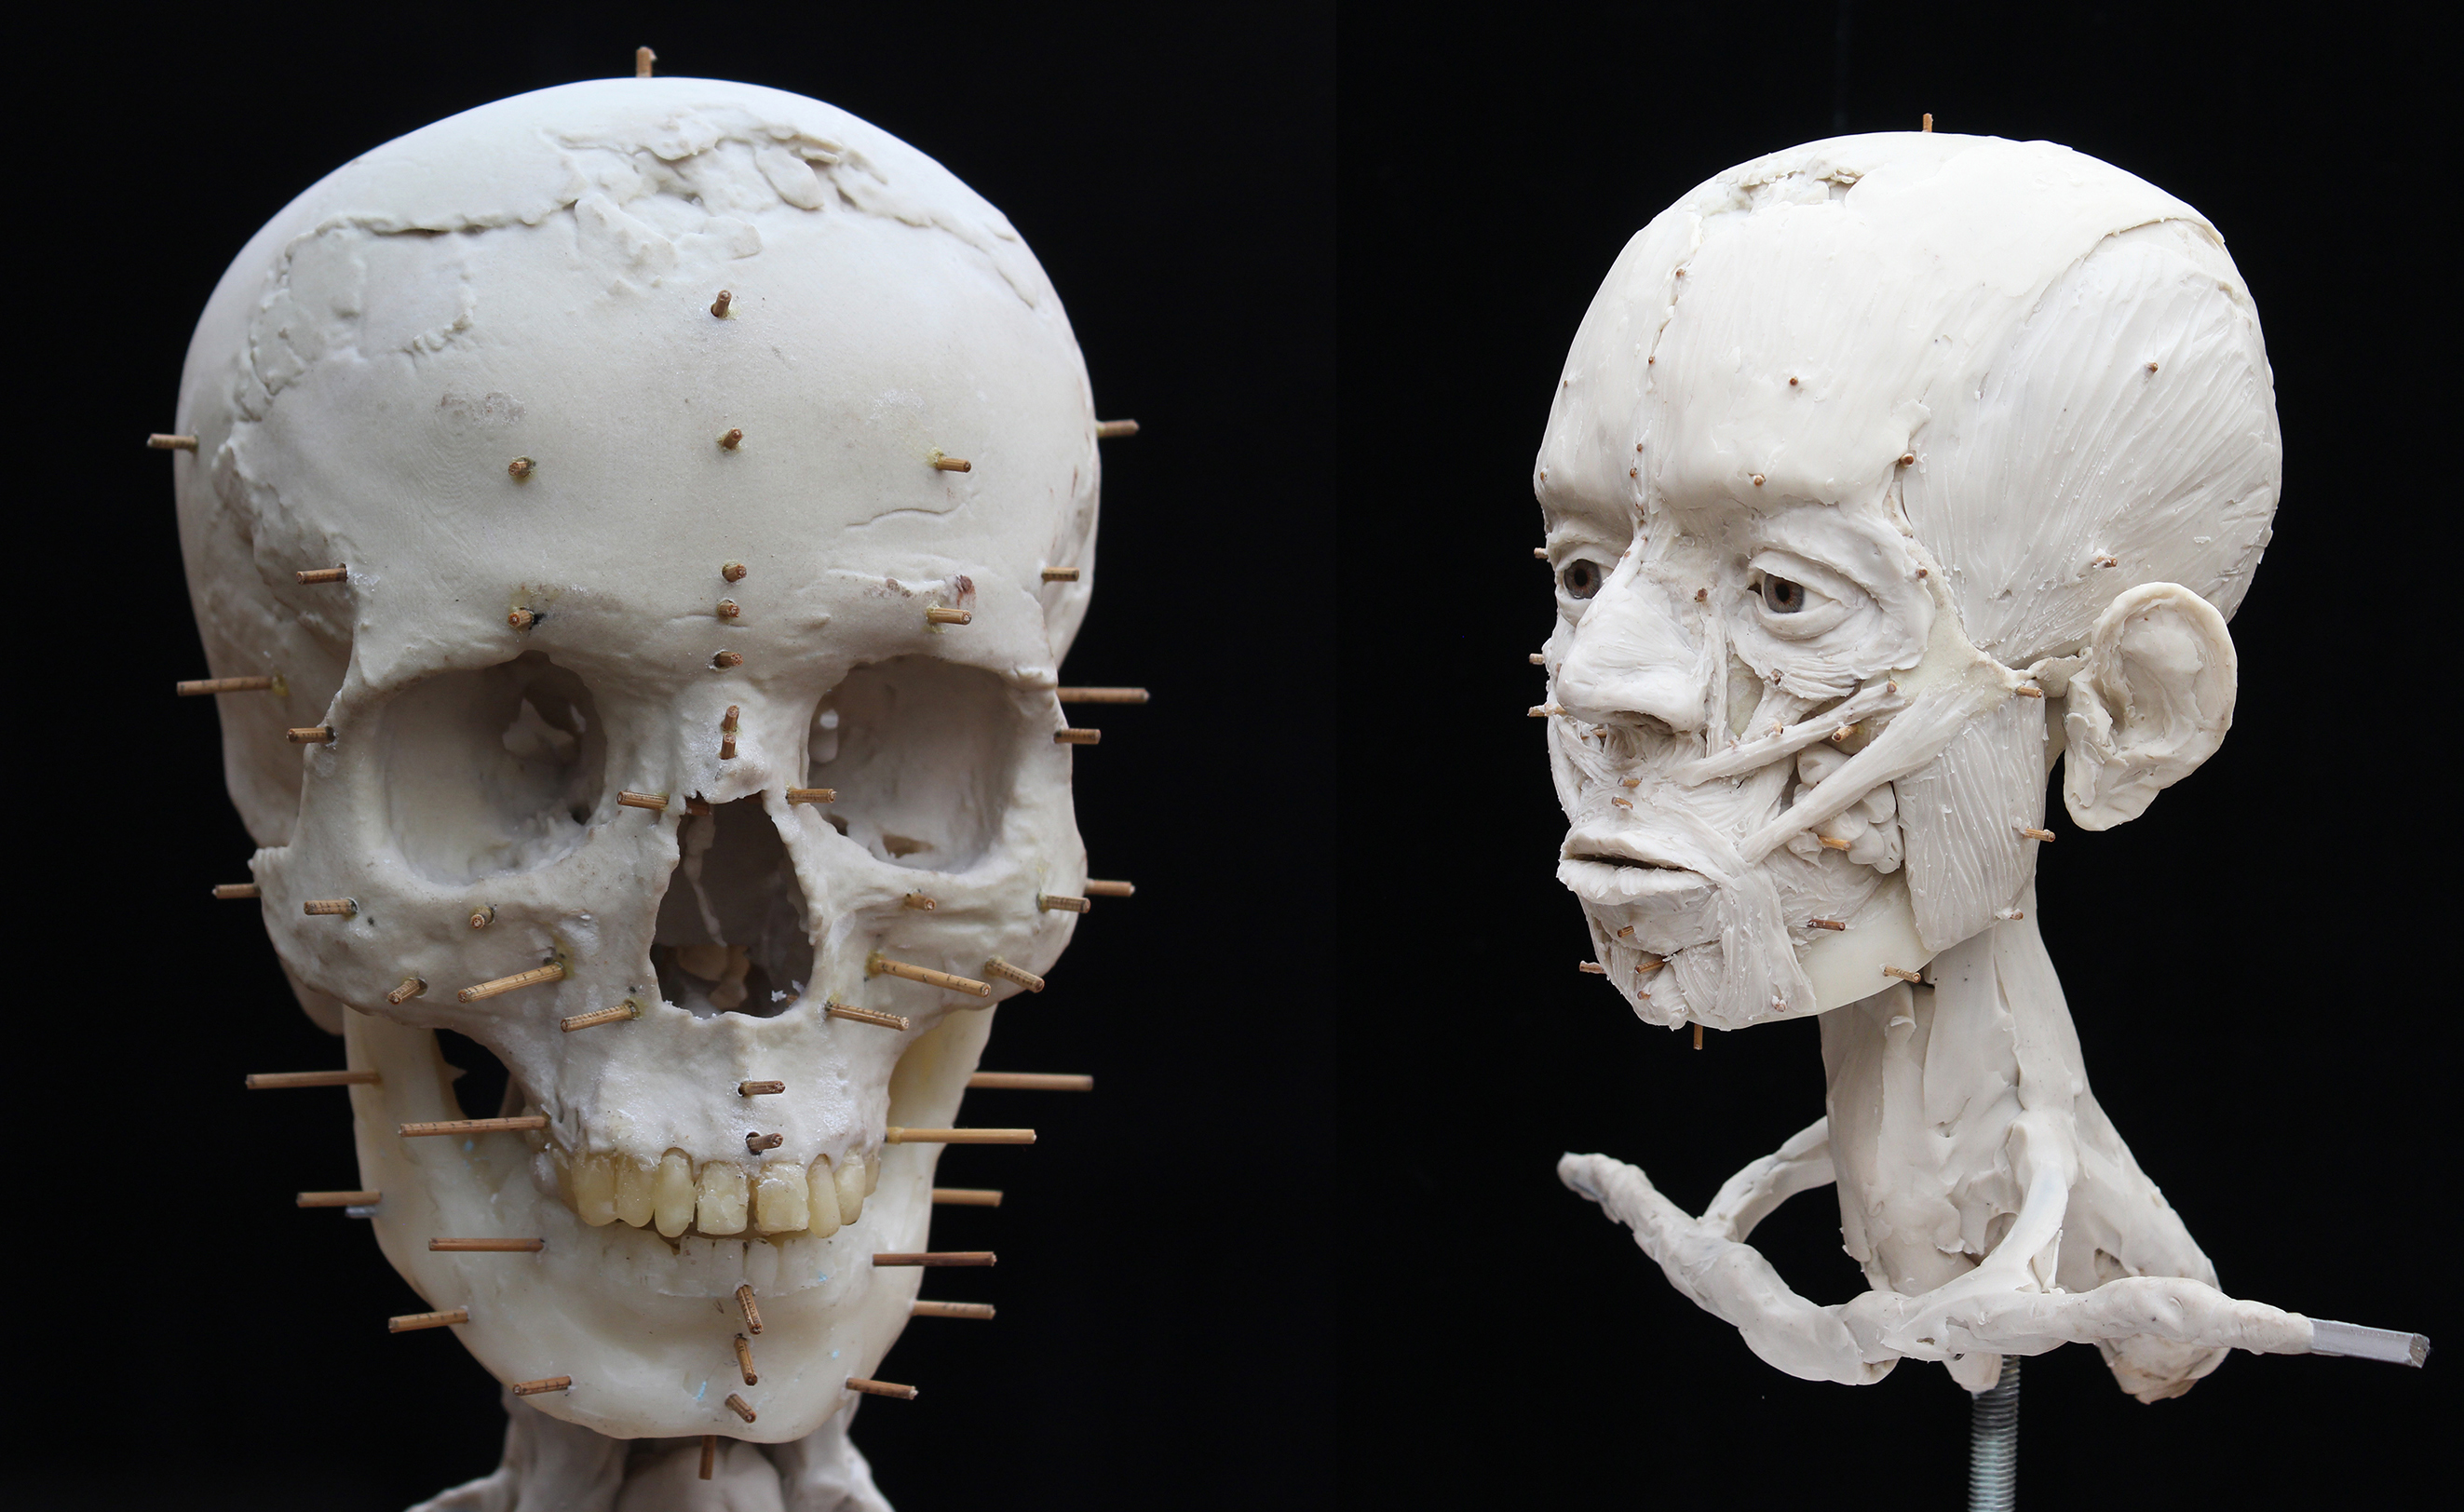 The 3D printed skull used to start facial reconstruction (left). An early stage in the reconstruction process – applying the muscles to the skull (right).